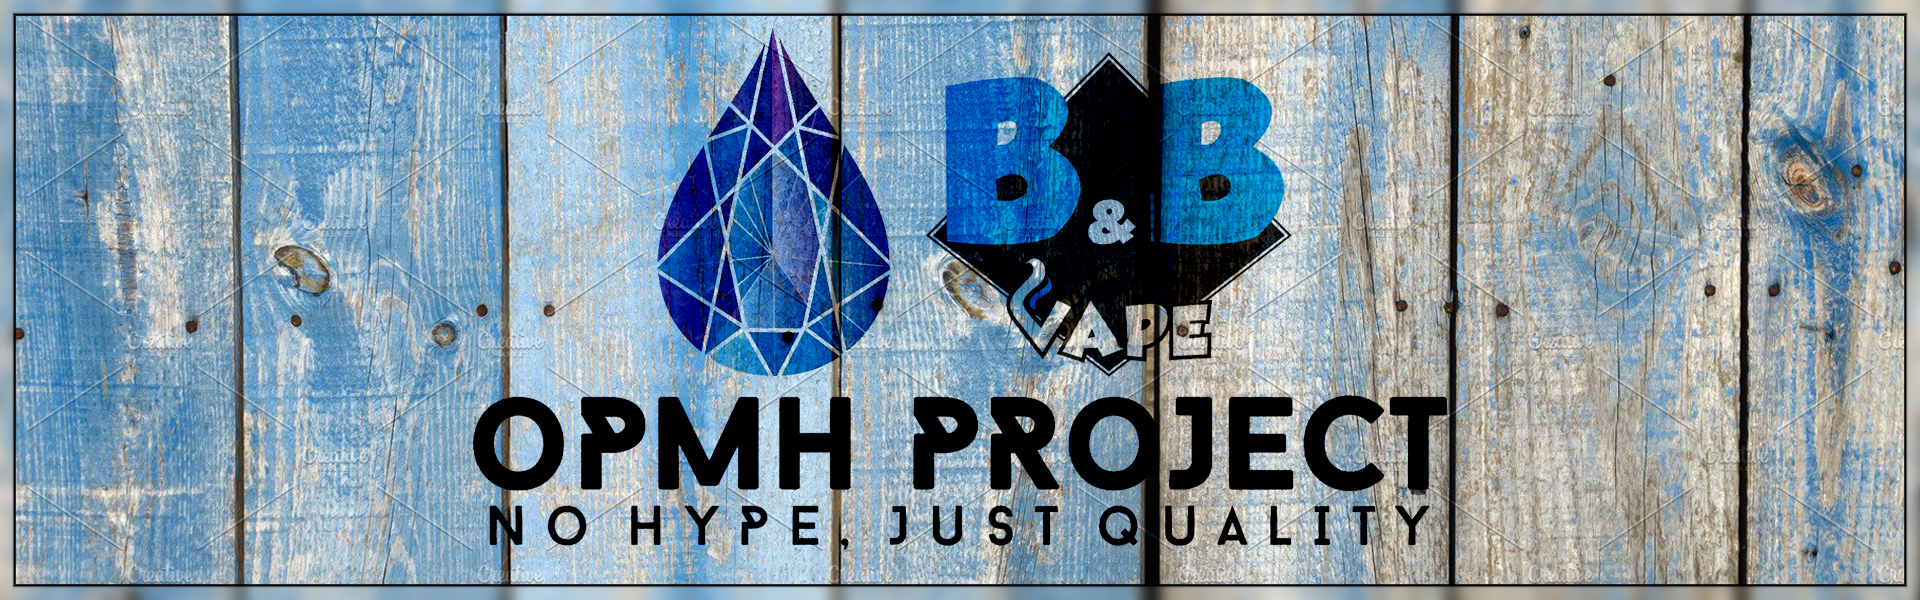 OPMH Project Banner